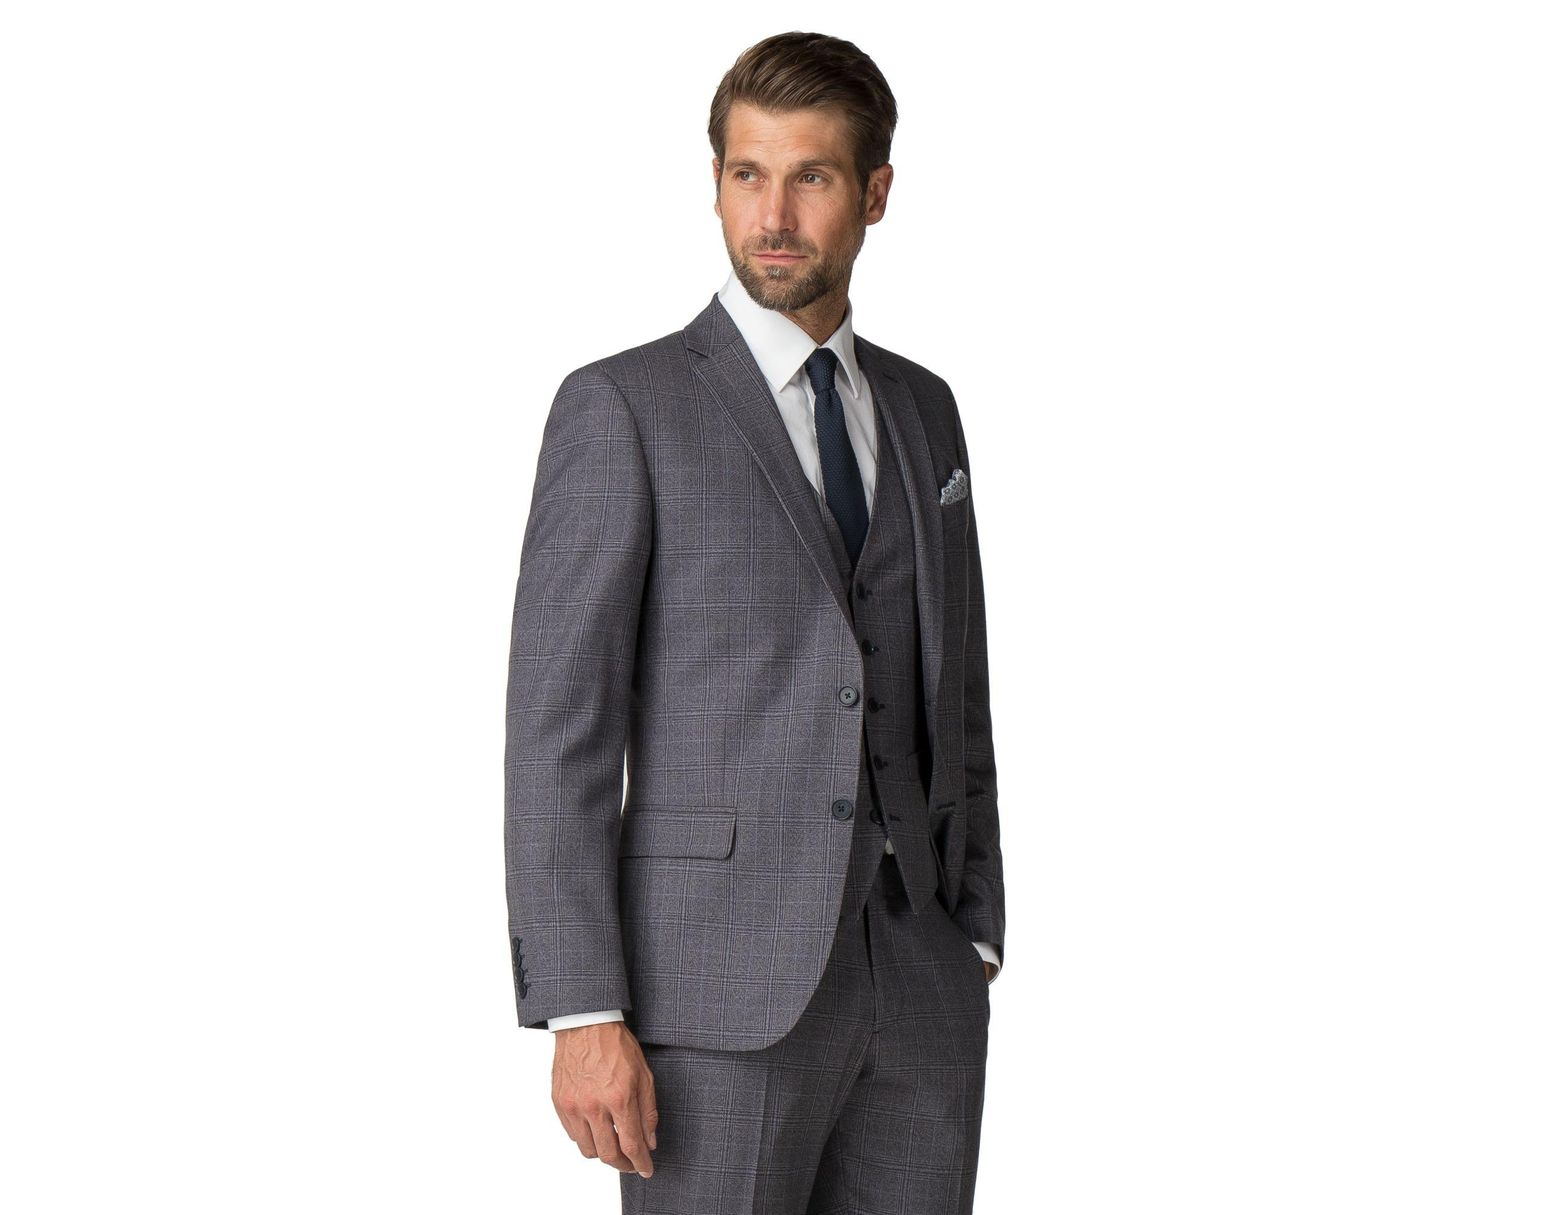 b17002073 Men's Blue Airforce Textured Check Tailored Fit Suit Jacket